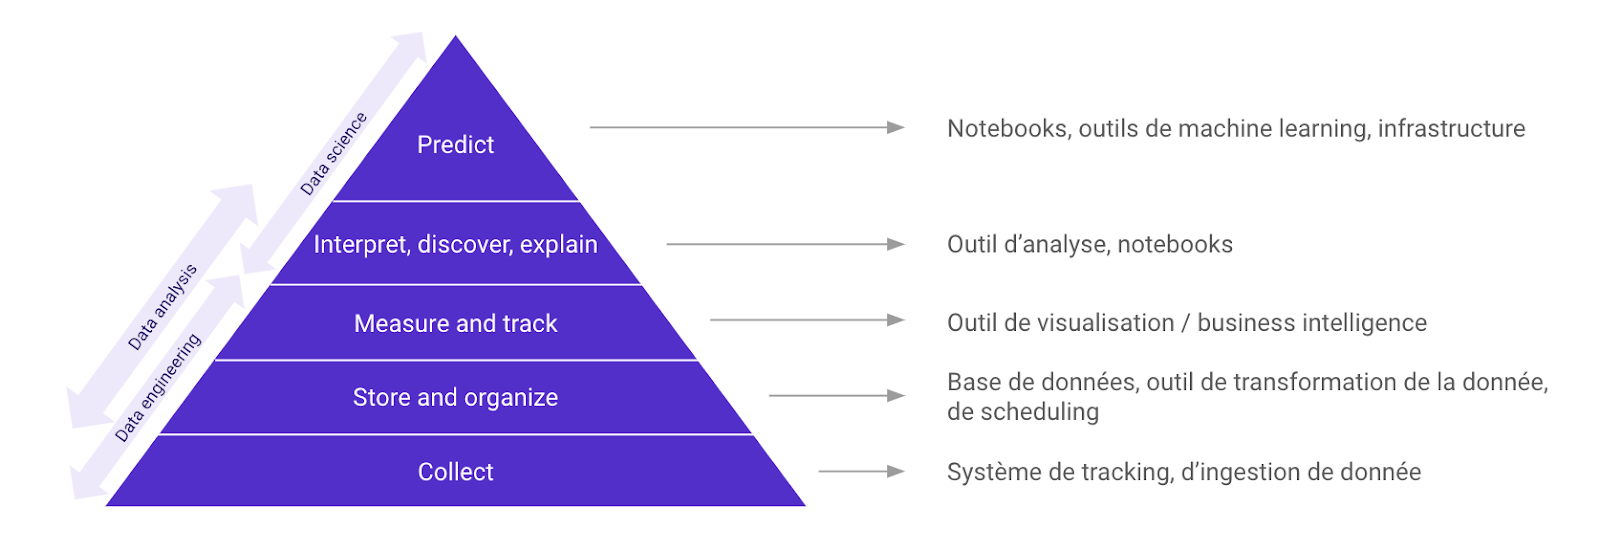 pyramide-outils-data-article-spendesk